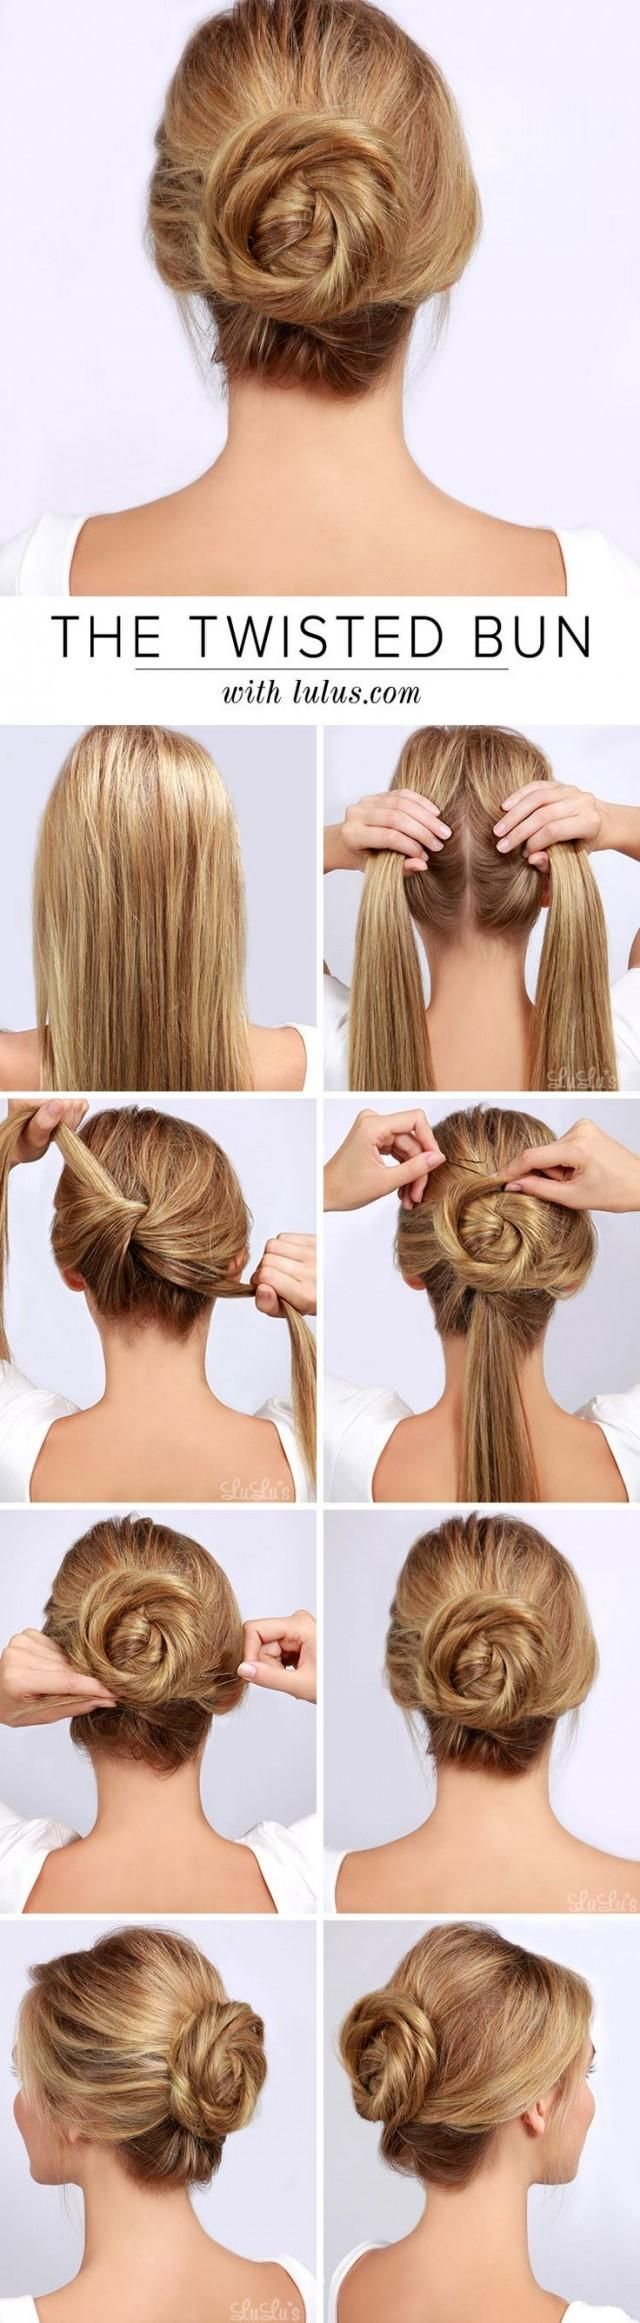 Prime 1000 Ideas About Lazy Day Hairstyles On Pinterest Full Ponytail Hairstyles For Women Draintrainus